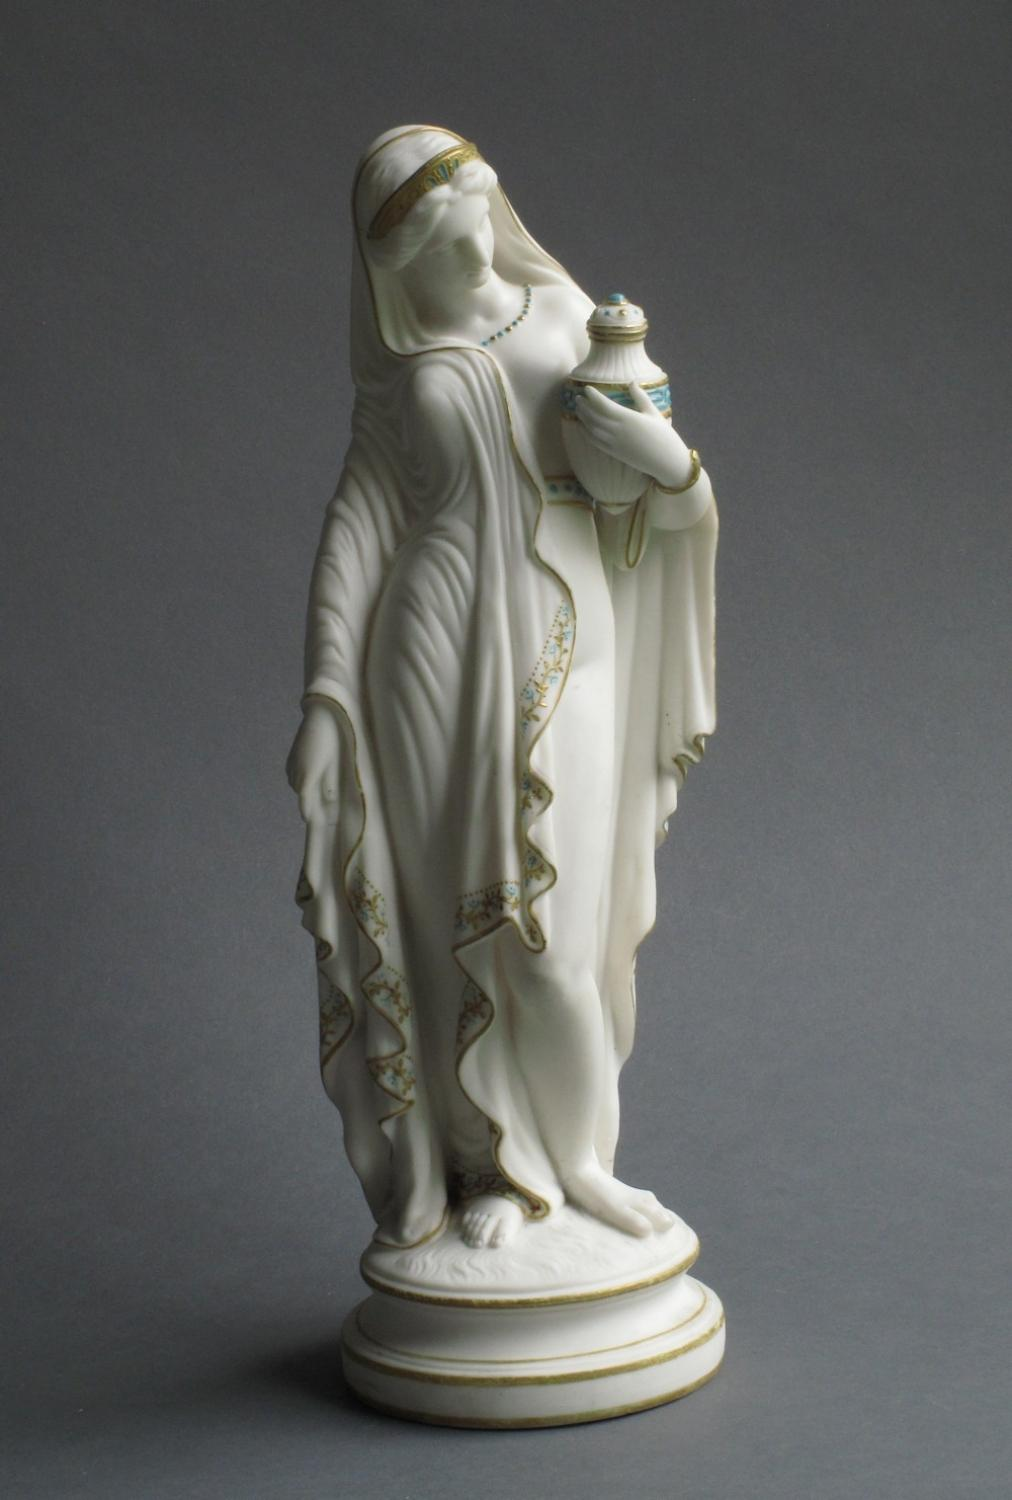 Parian figure of Phryne's companion